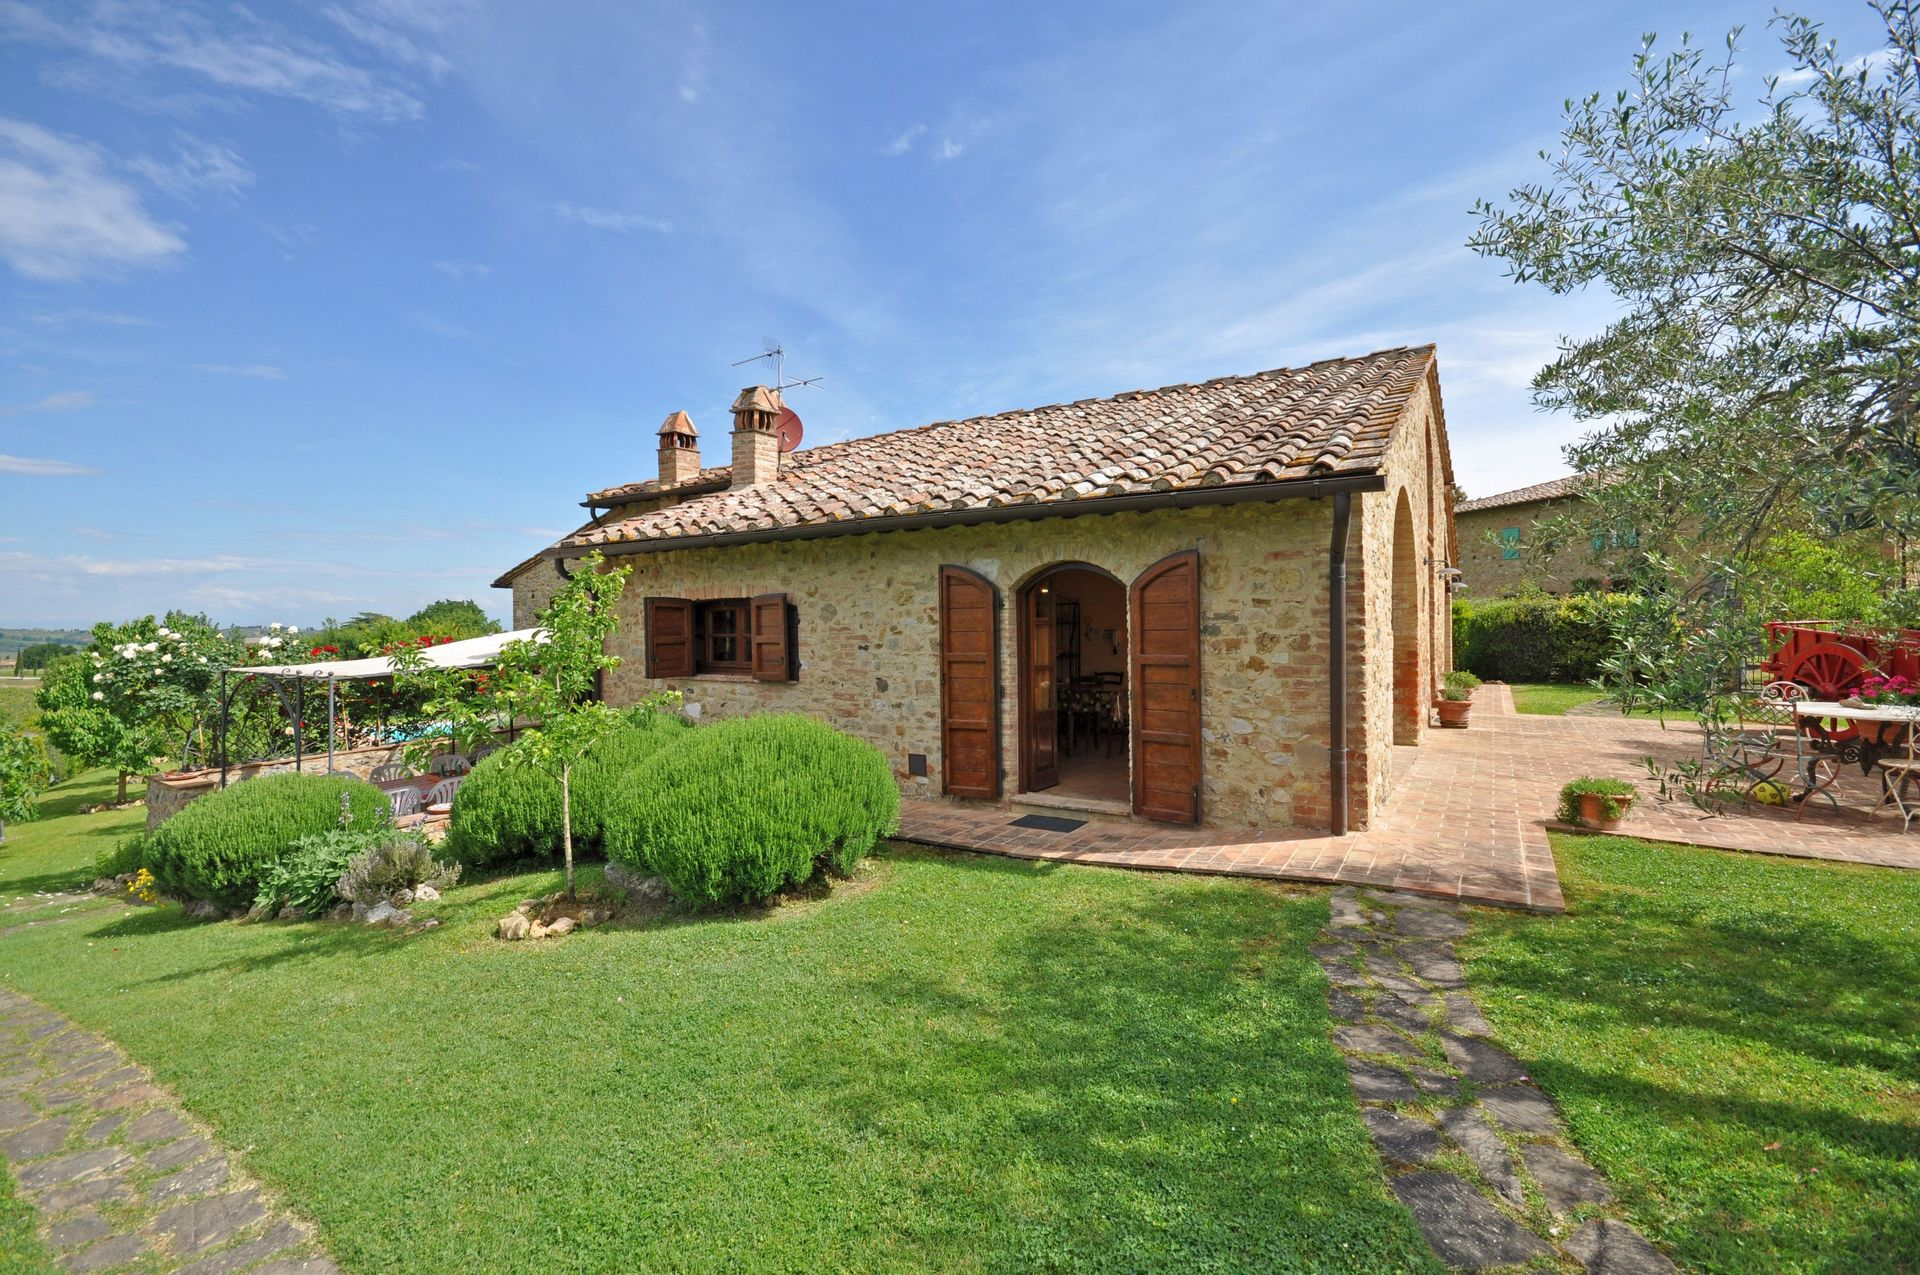 Pancole Villa Vacation Rental Villa Giulia That Sleeps 10